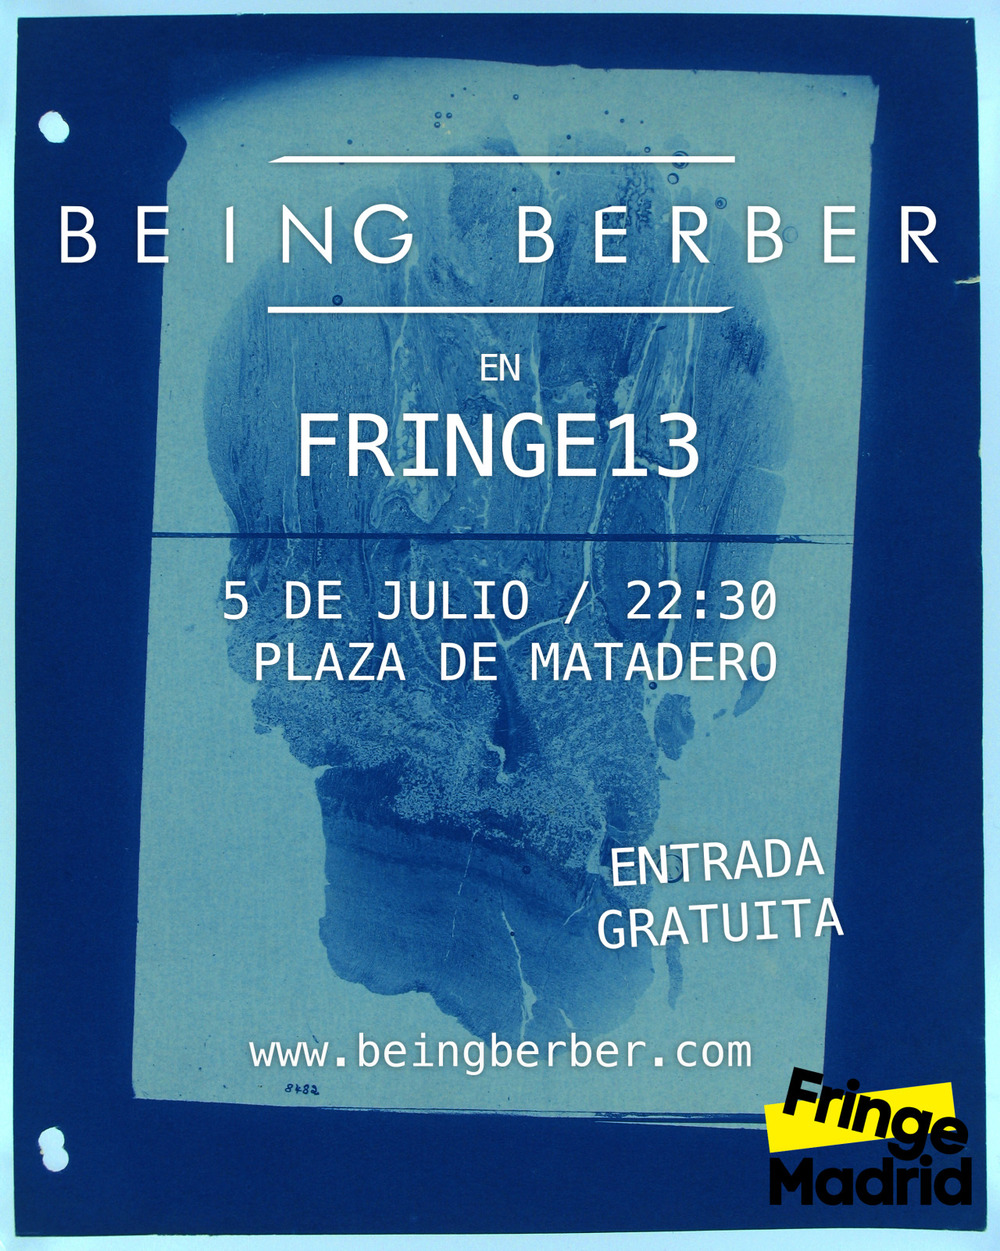 Being Berber is a Fringe Event. You have been warned. 05/07/13  22:30h www.fringemadrid.com/musica/